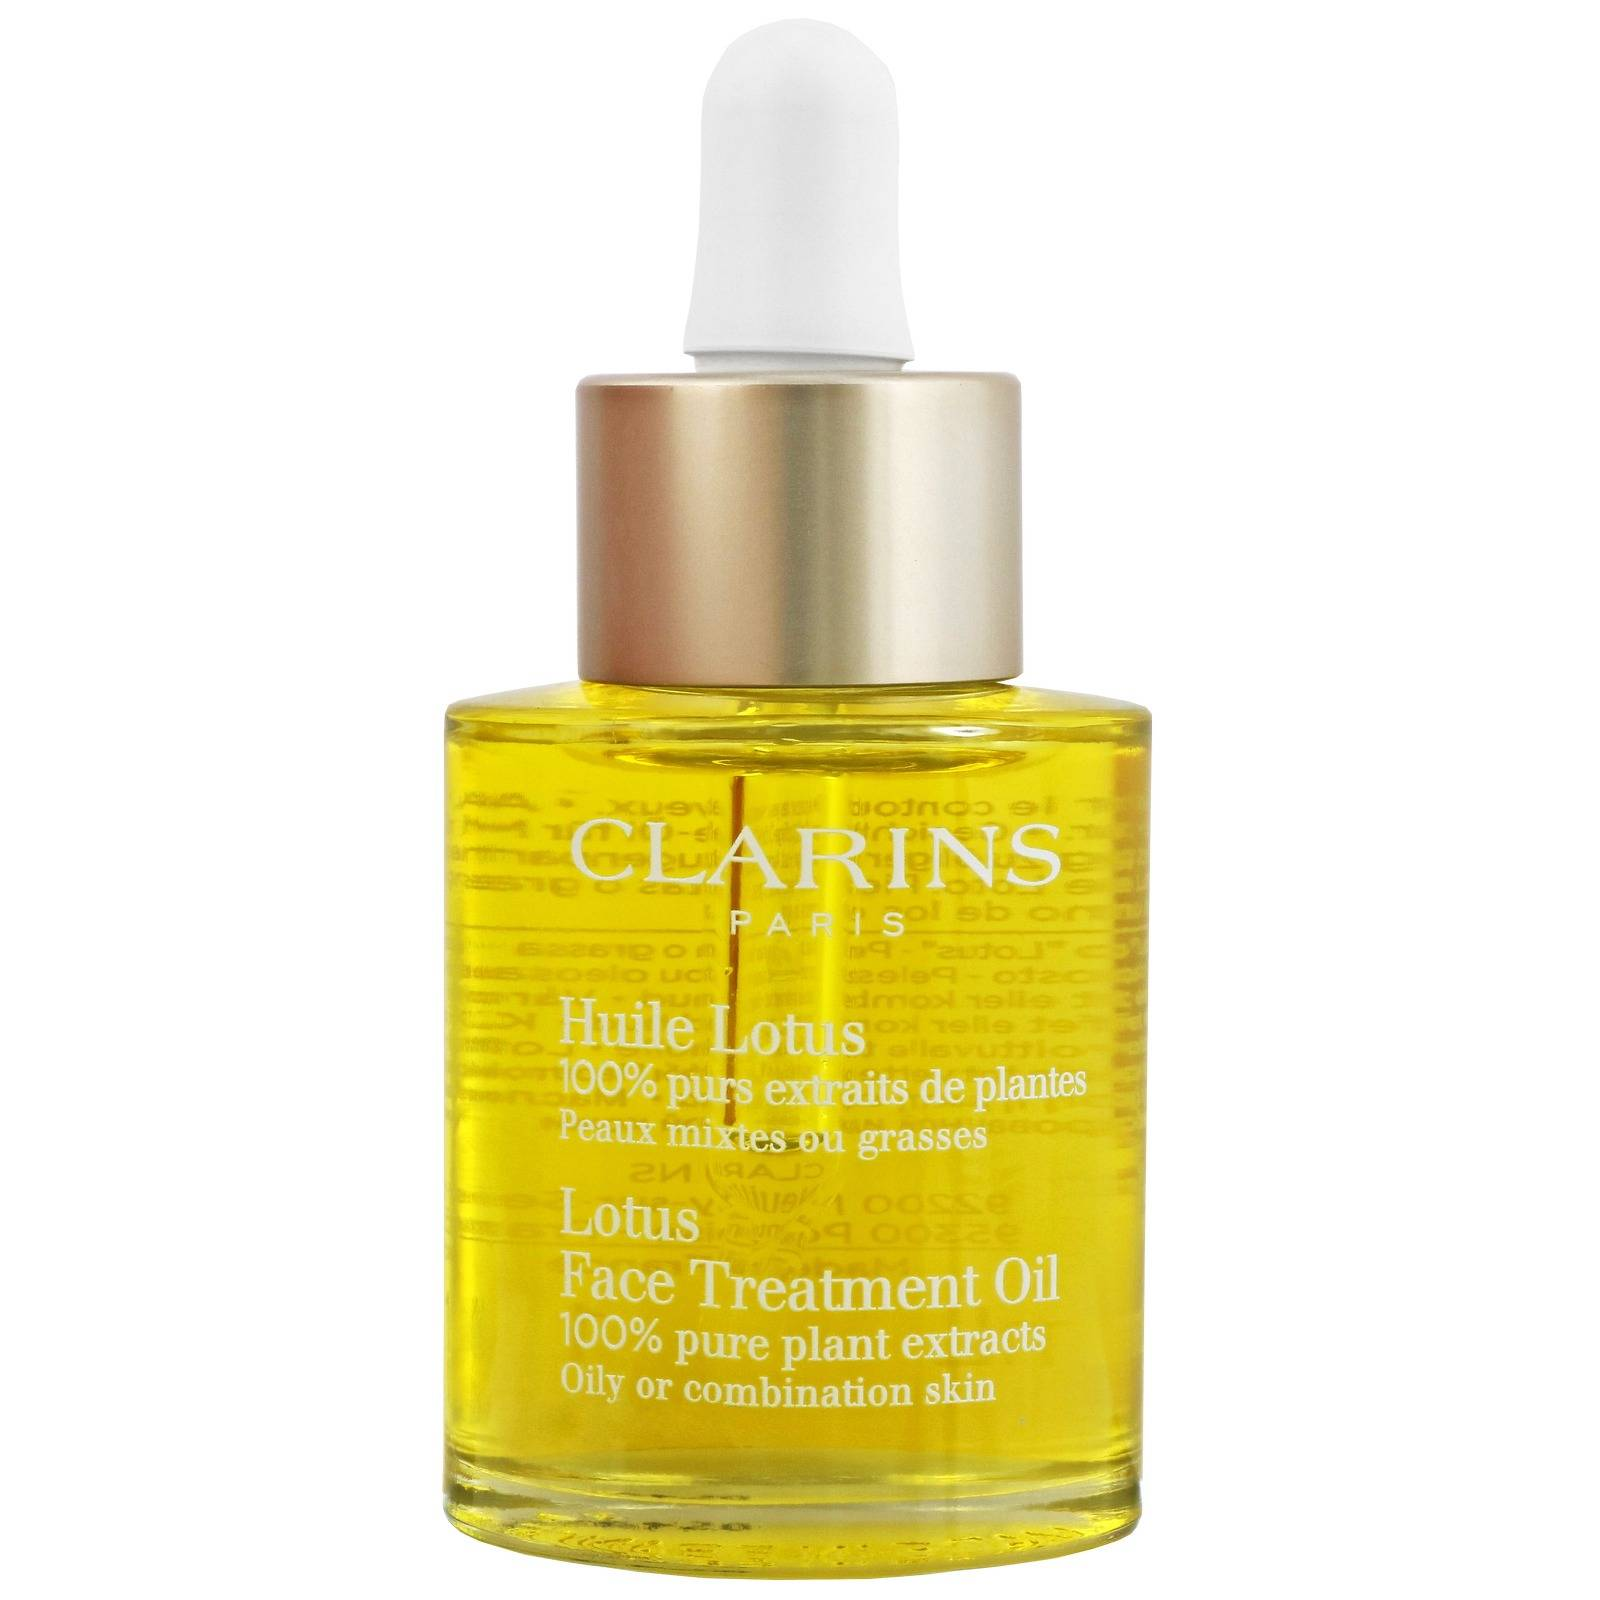 Clarins - Face Treatment Oil Lotus Oily/Combination Skin 30ml / 1 fl.oz. for Women